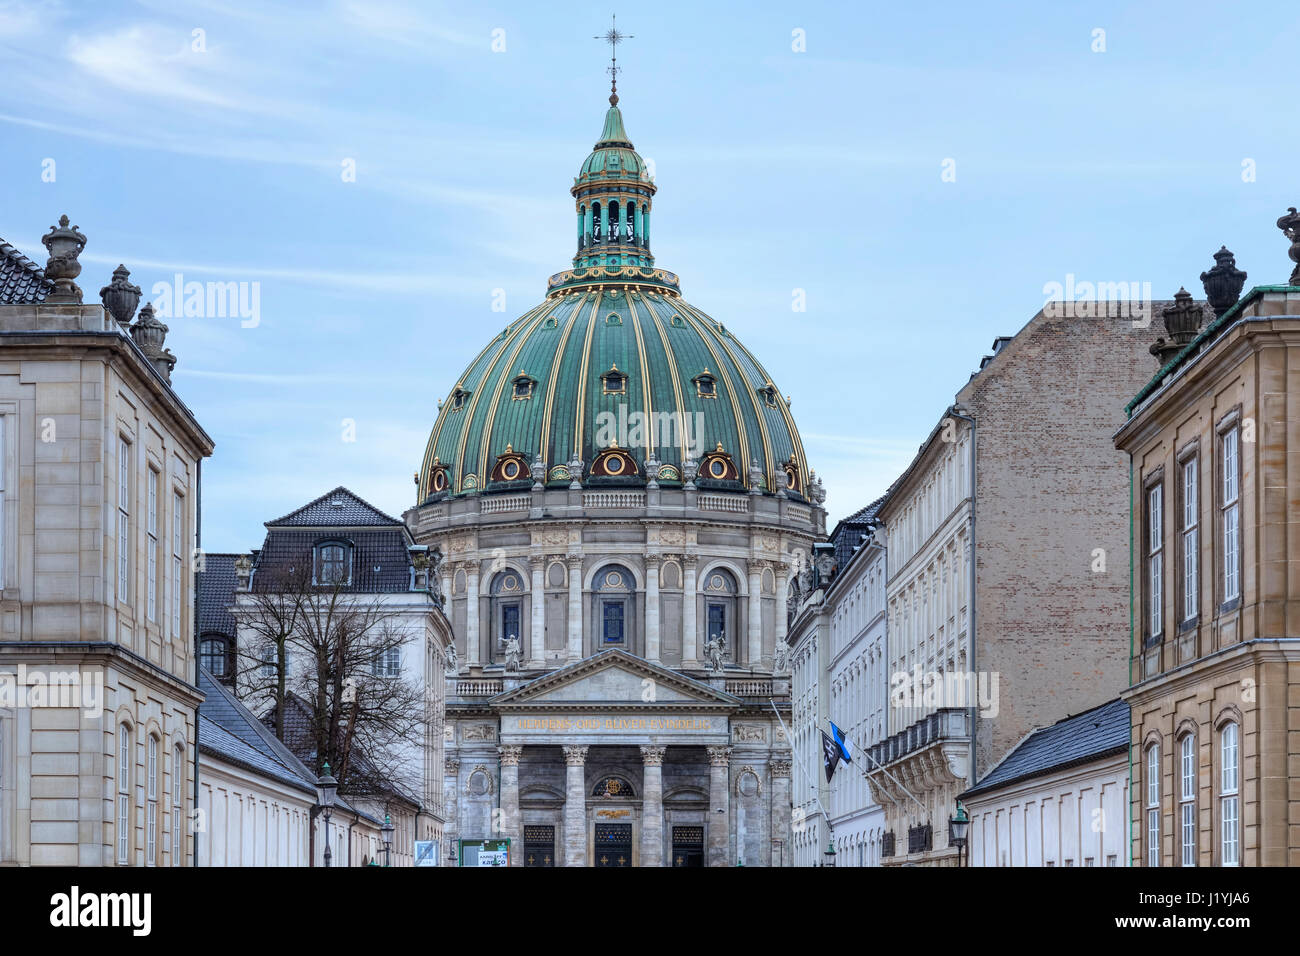 Frederik's Church, Copenhagen, Denmark, Scandinavia Stock Photo